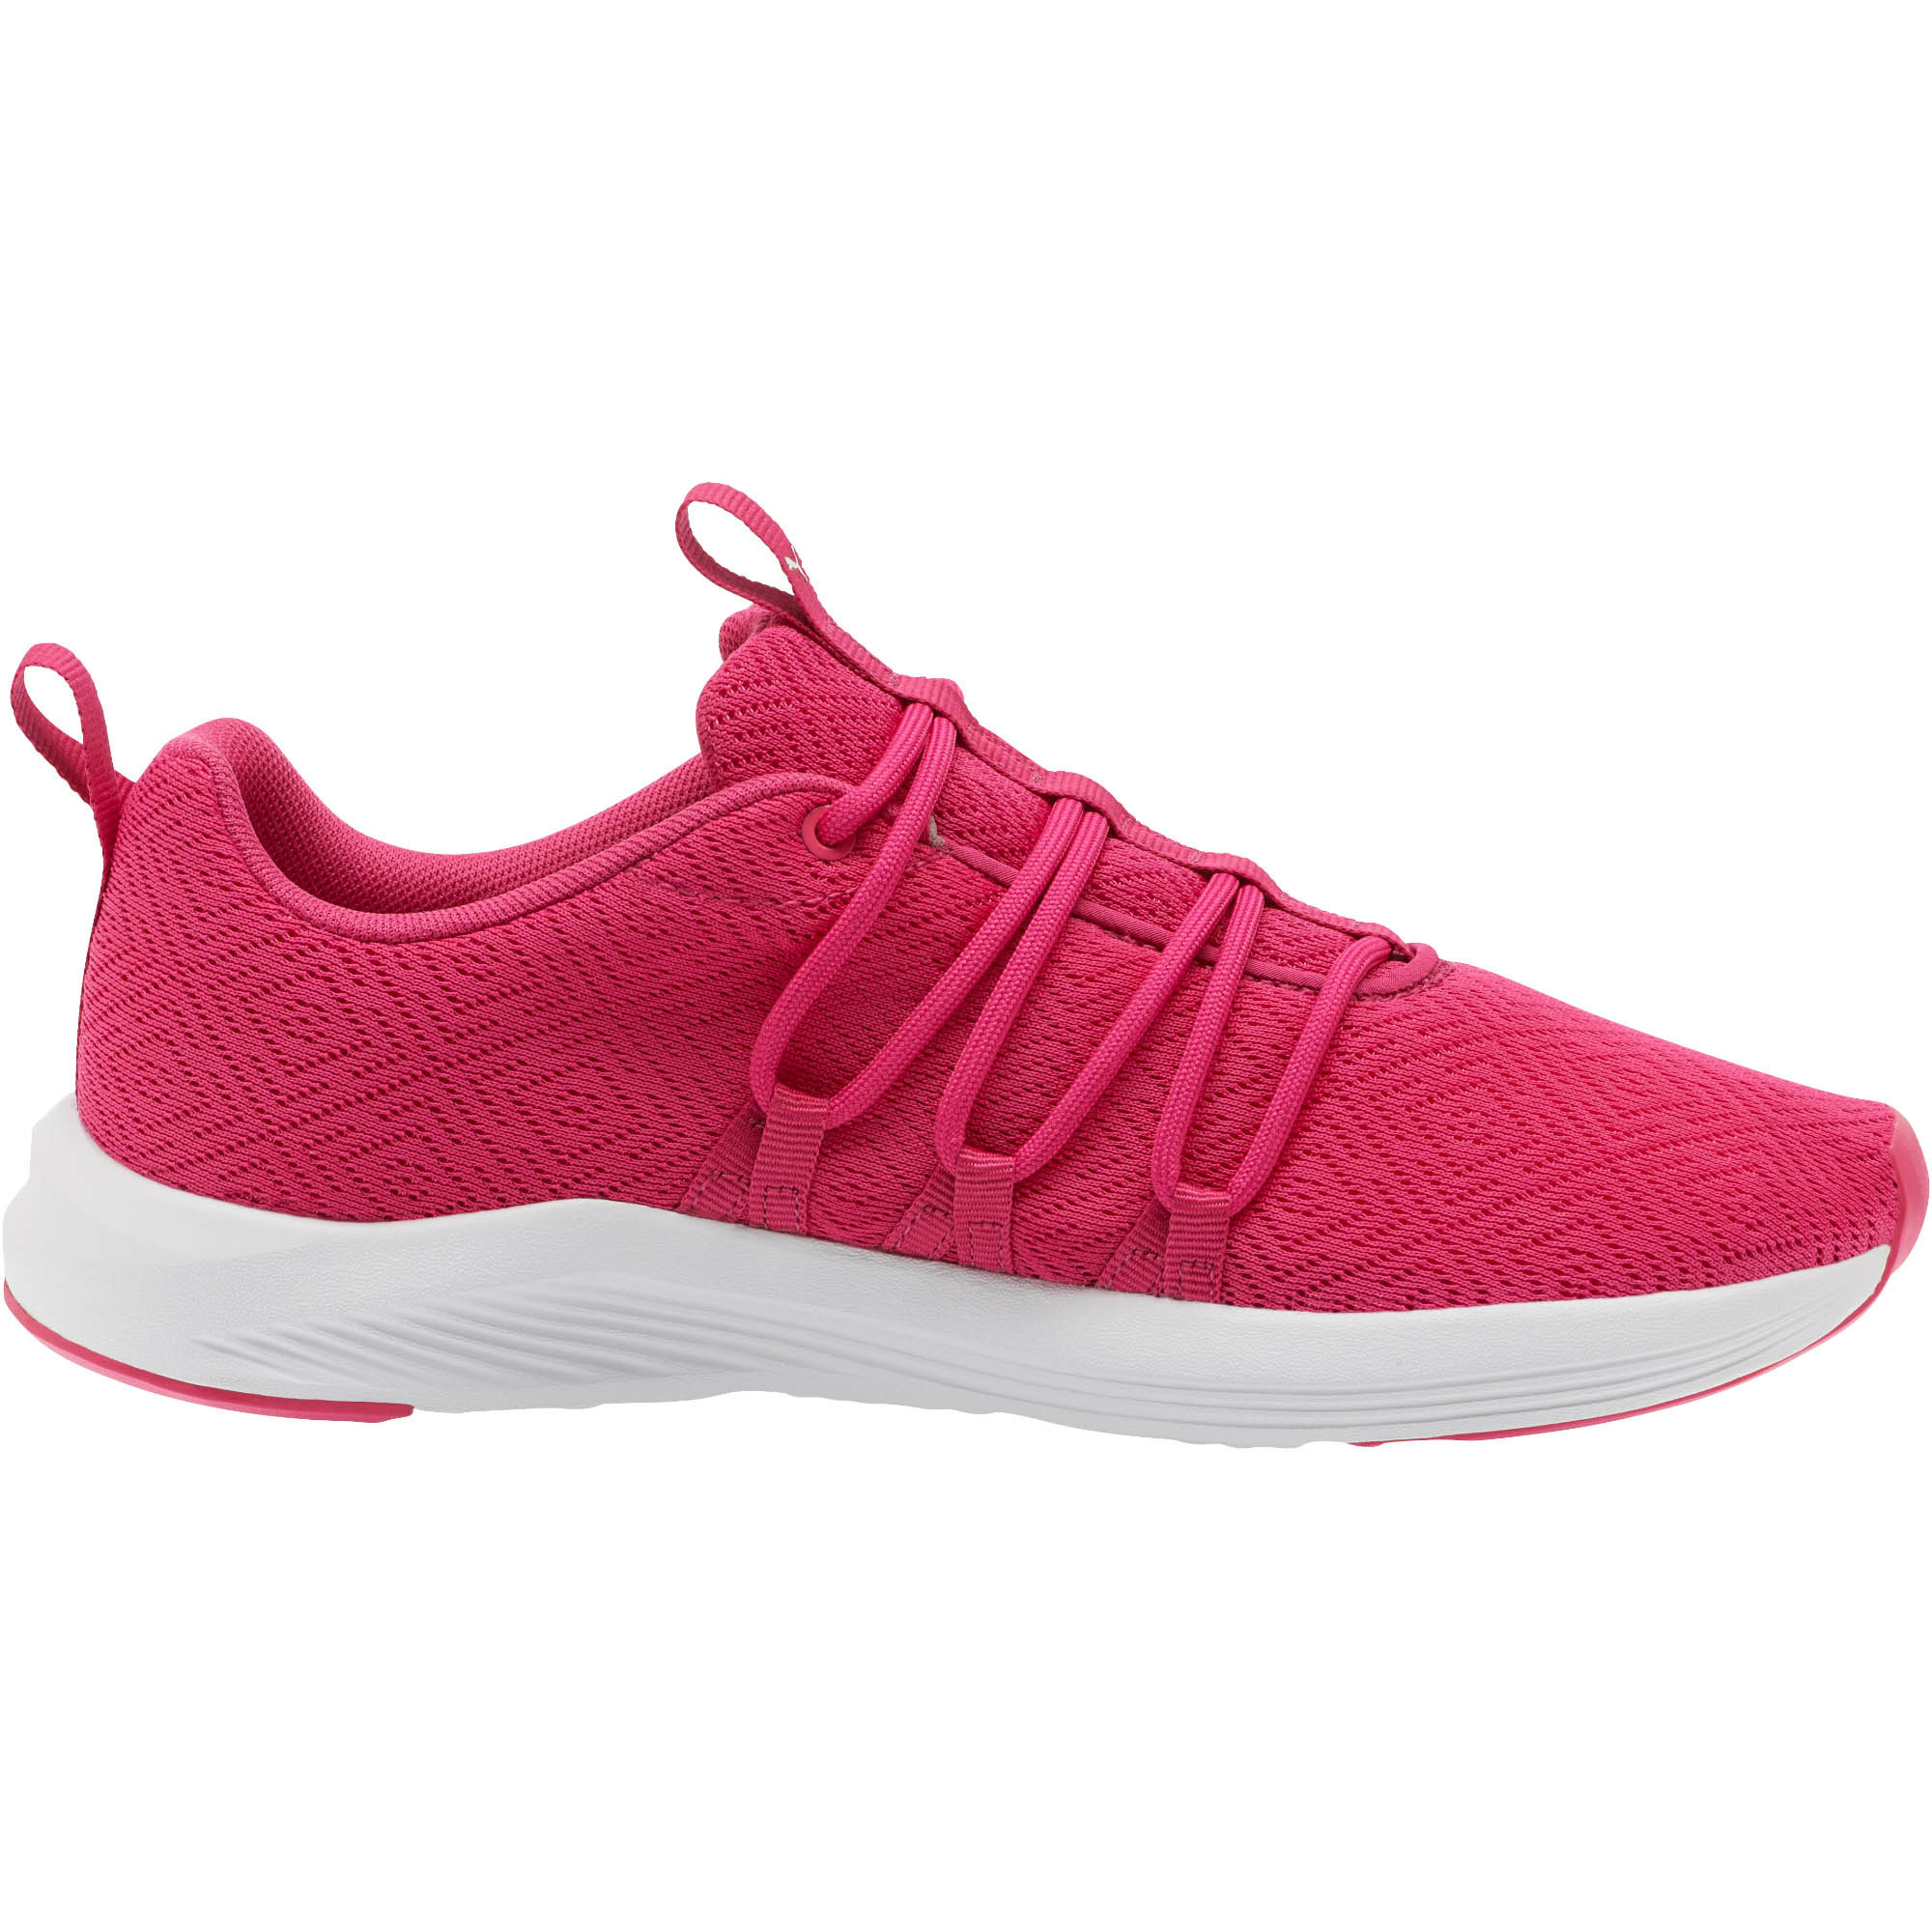 PUMA-Prowl-Alt-Stellar-Women-s-Training-Shoes-Women-Shoe-Training thumbnail 15